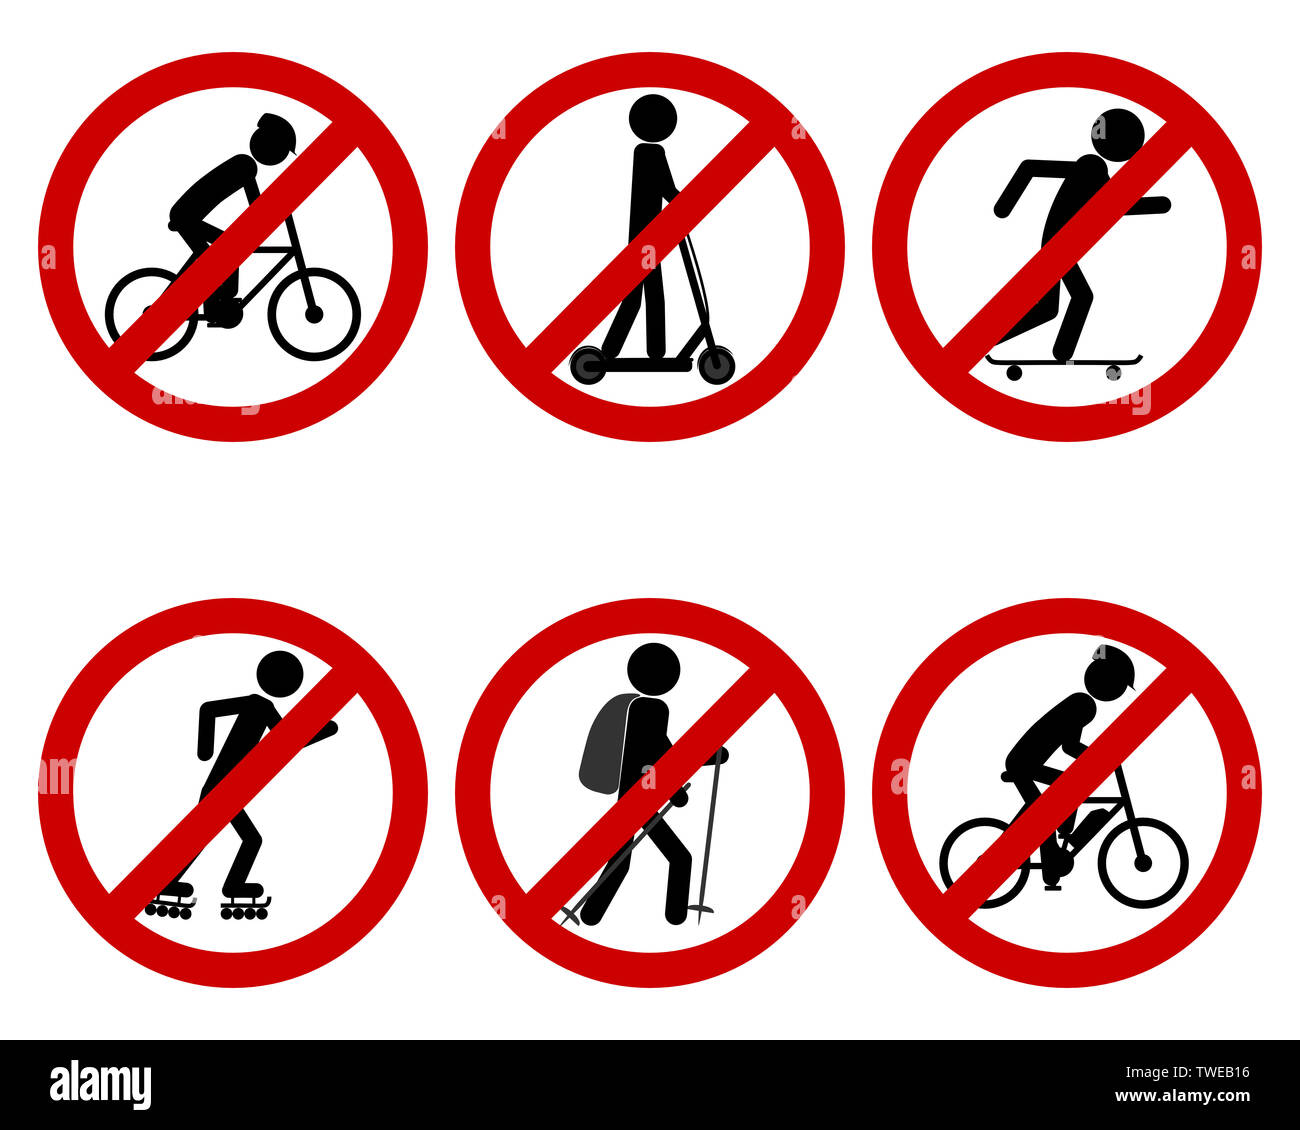 Traffic prohibition sign for various sports - Stock Image